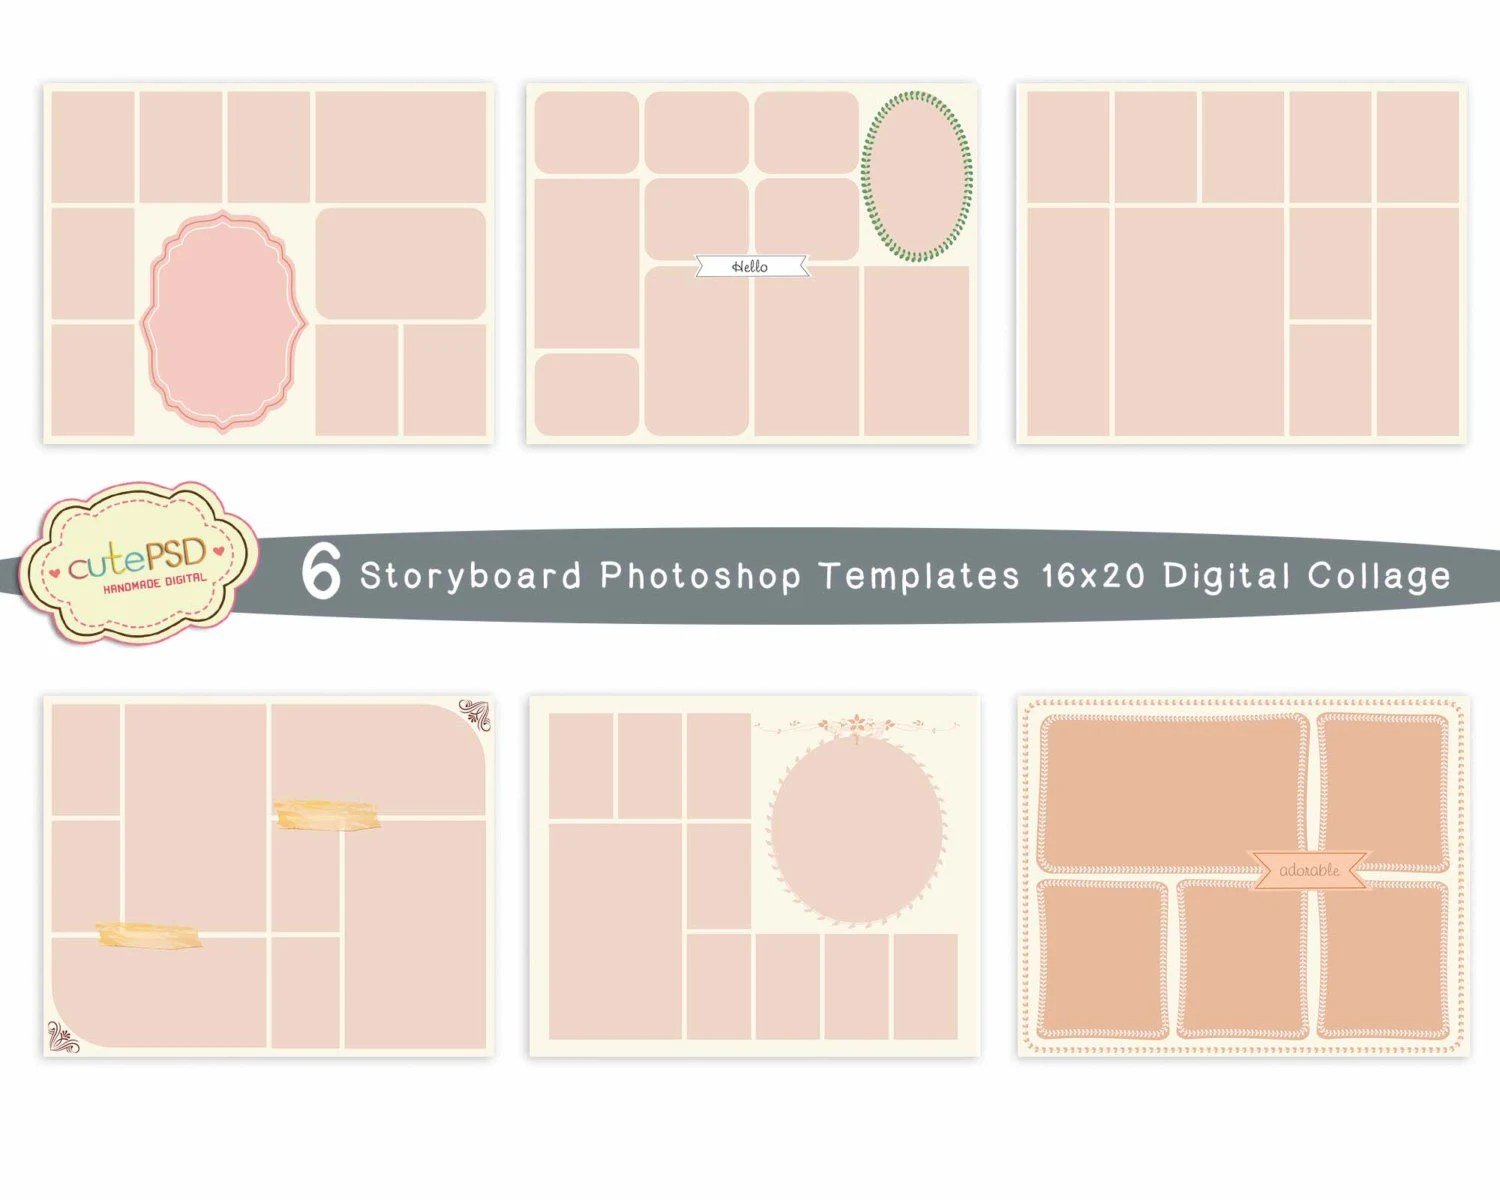 Photo Collage Templates - Photoshop Collage Templates - Storyboard - digital storyboard templates